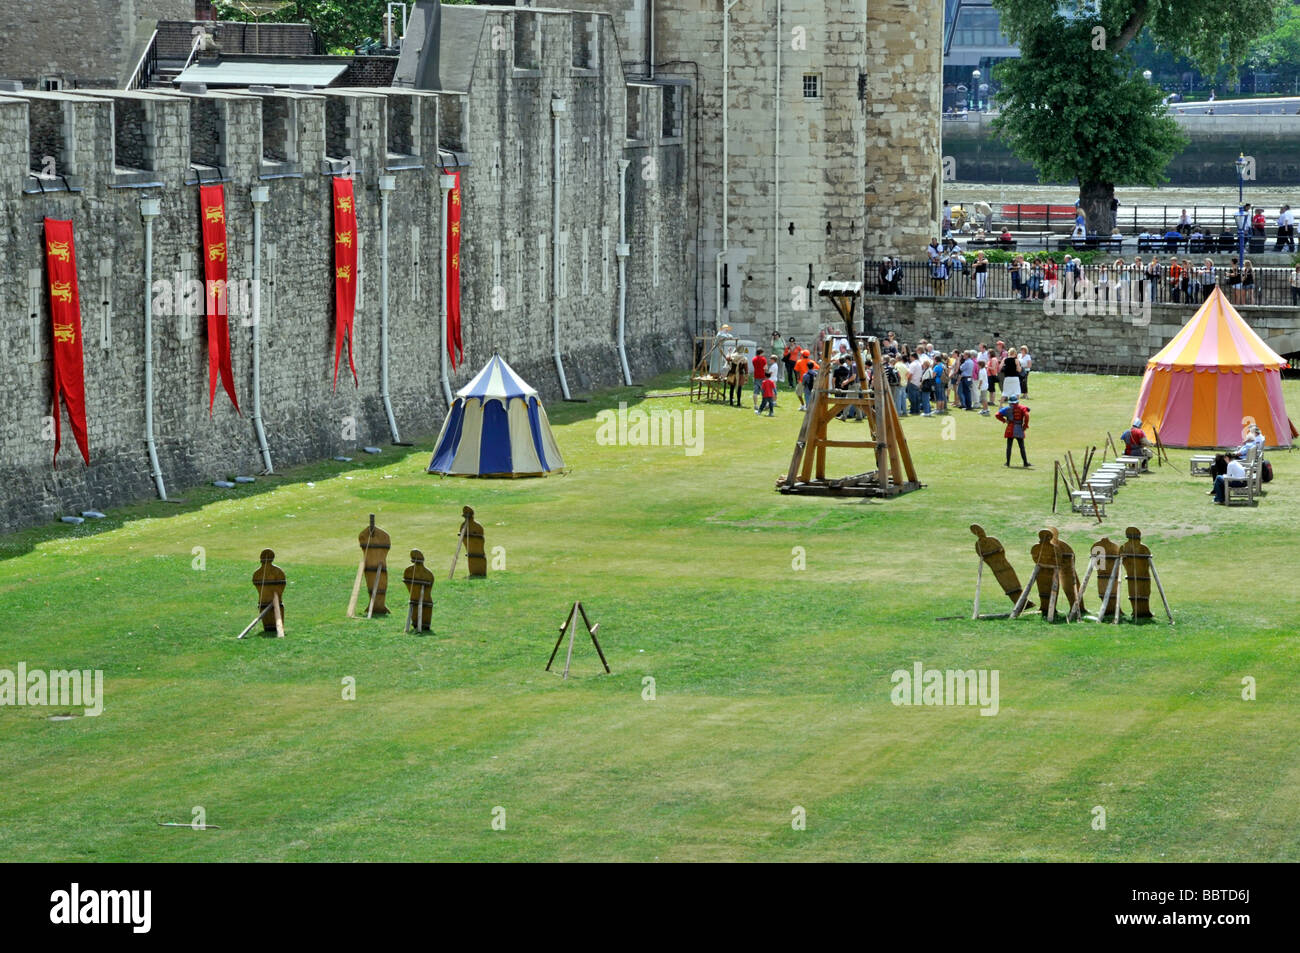 Tower of London summertime tourist activities below the walls River Thames beyond - Stock Image